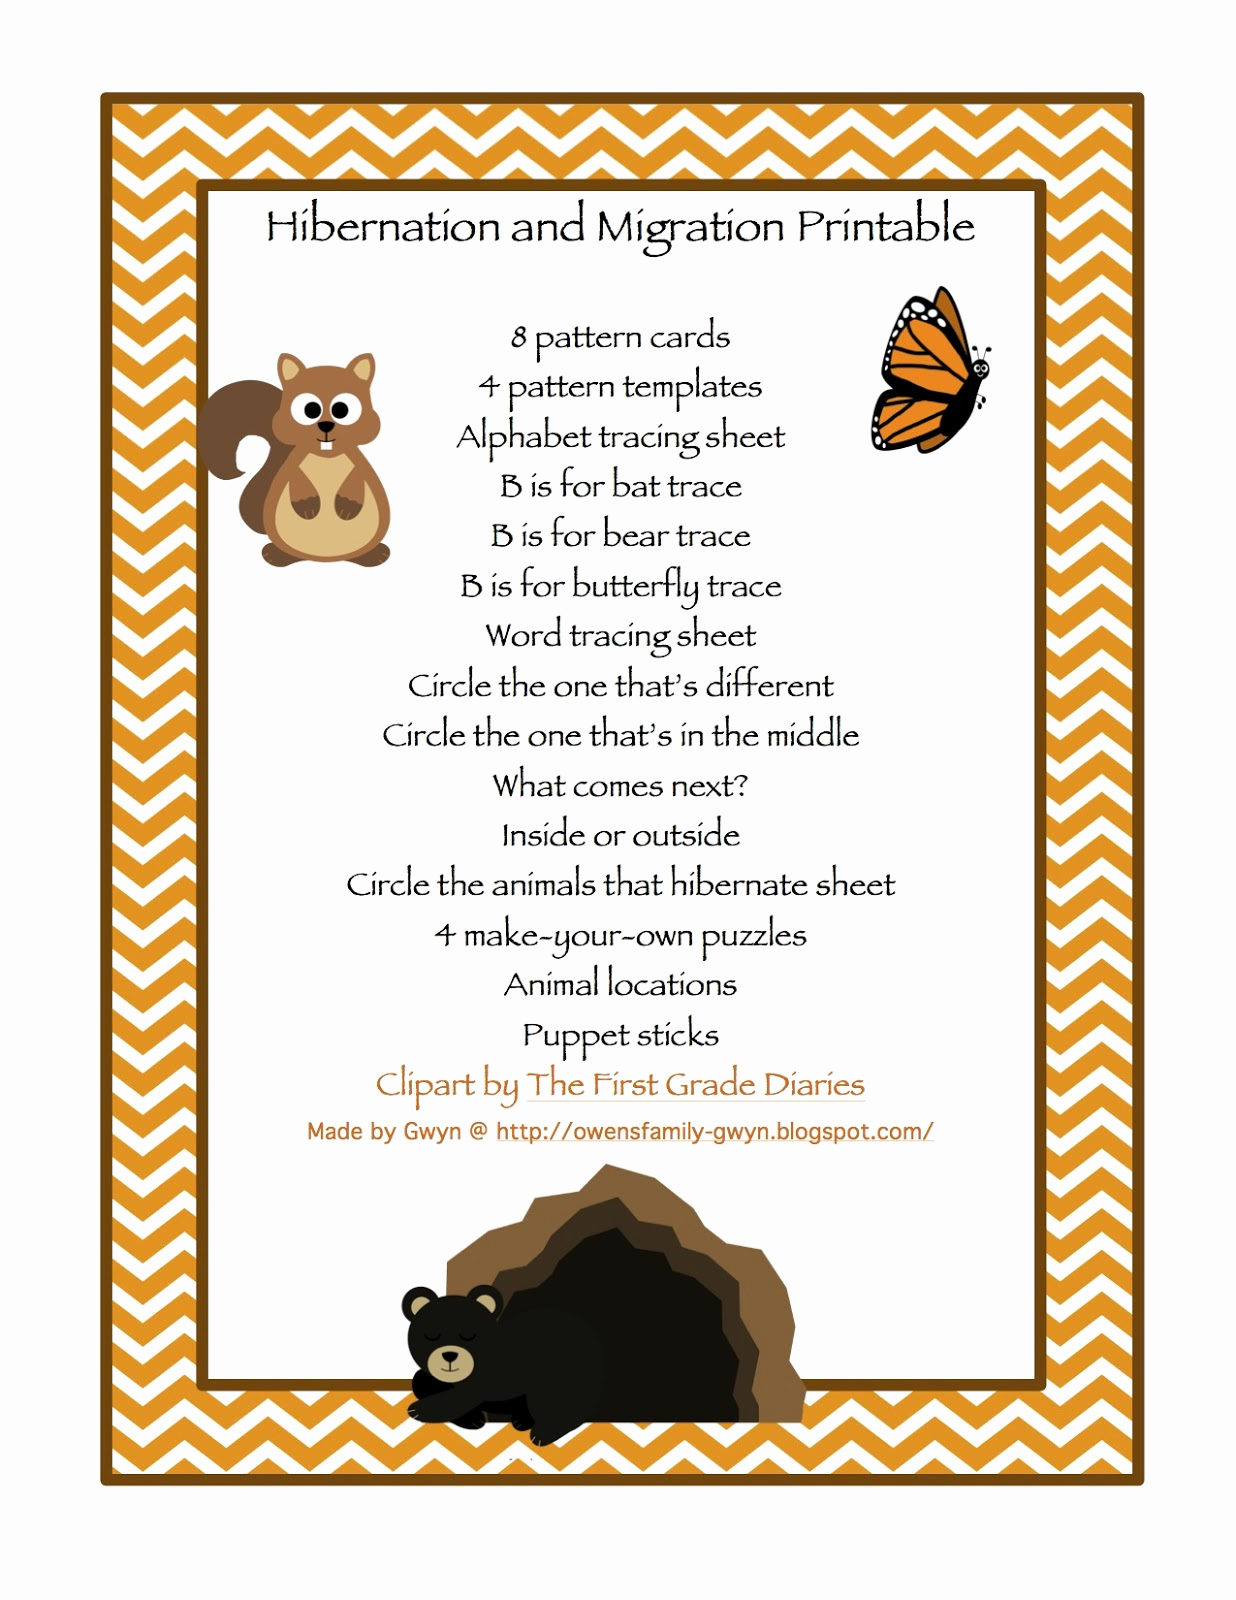 Hibernation Worksheets for Preschool Lovely Hibernation & Migration Printable Preschool Printables